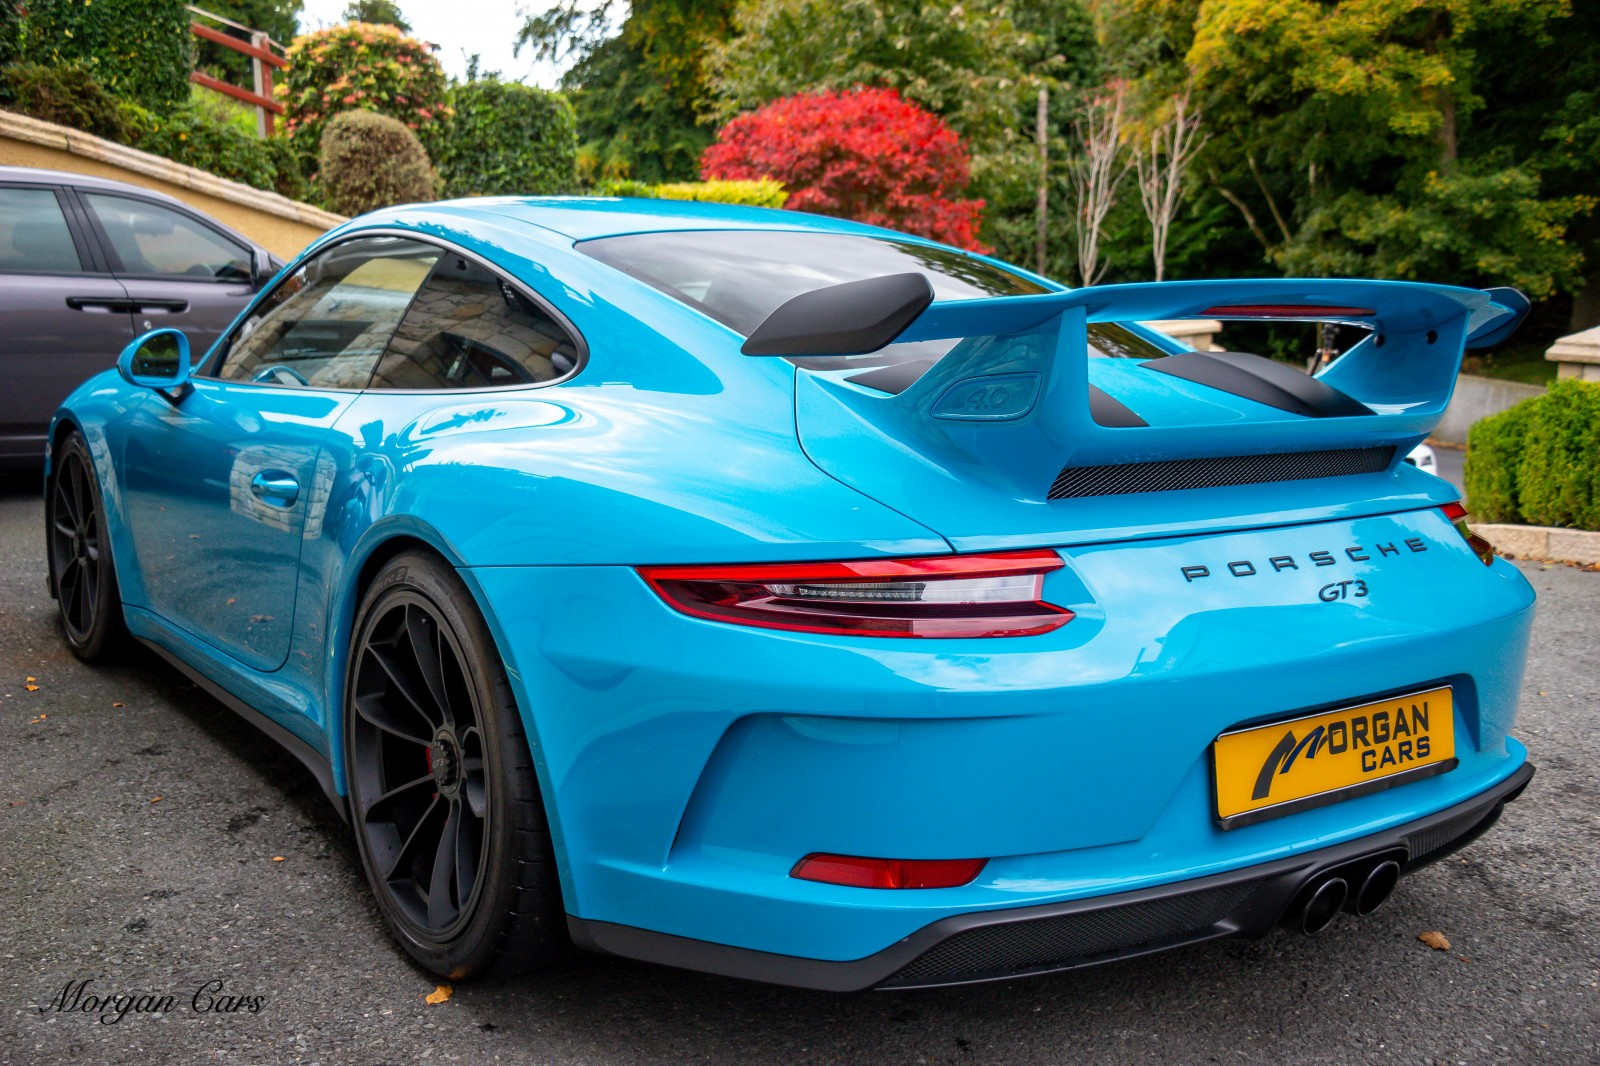 2018 Porsche 911 991.2 GT3 PDK CLUBSPORT Petrol Automatic – Morgan Cars 9 Mound Road, Warrenpoint, Newry BT34 3LW, UK full